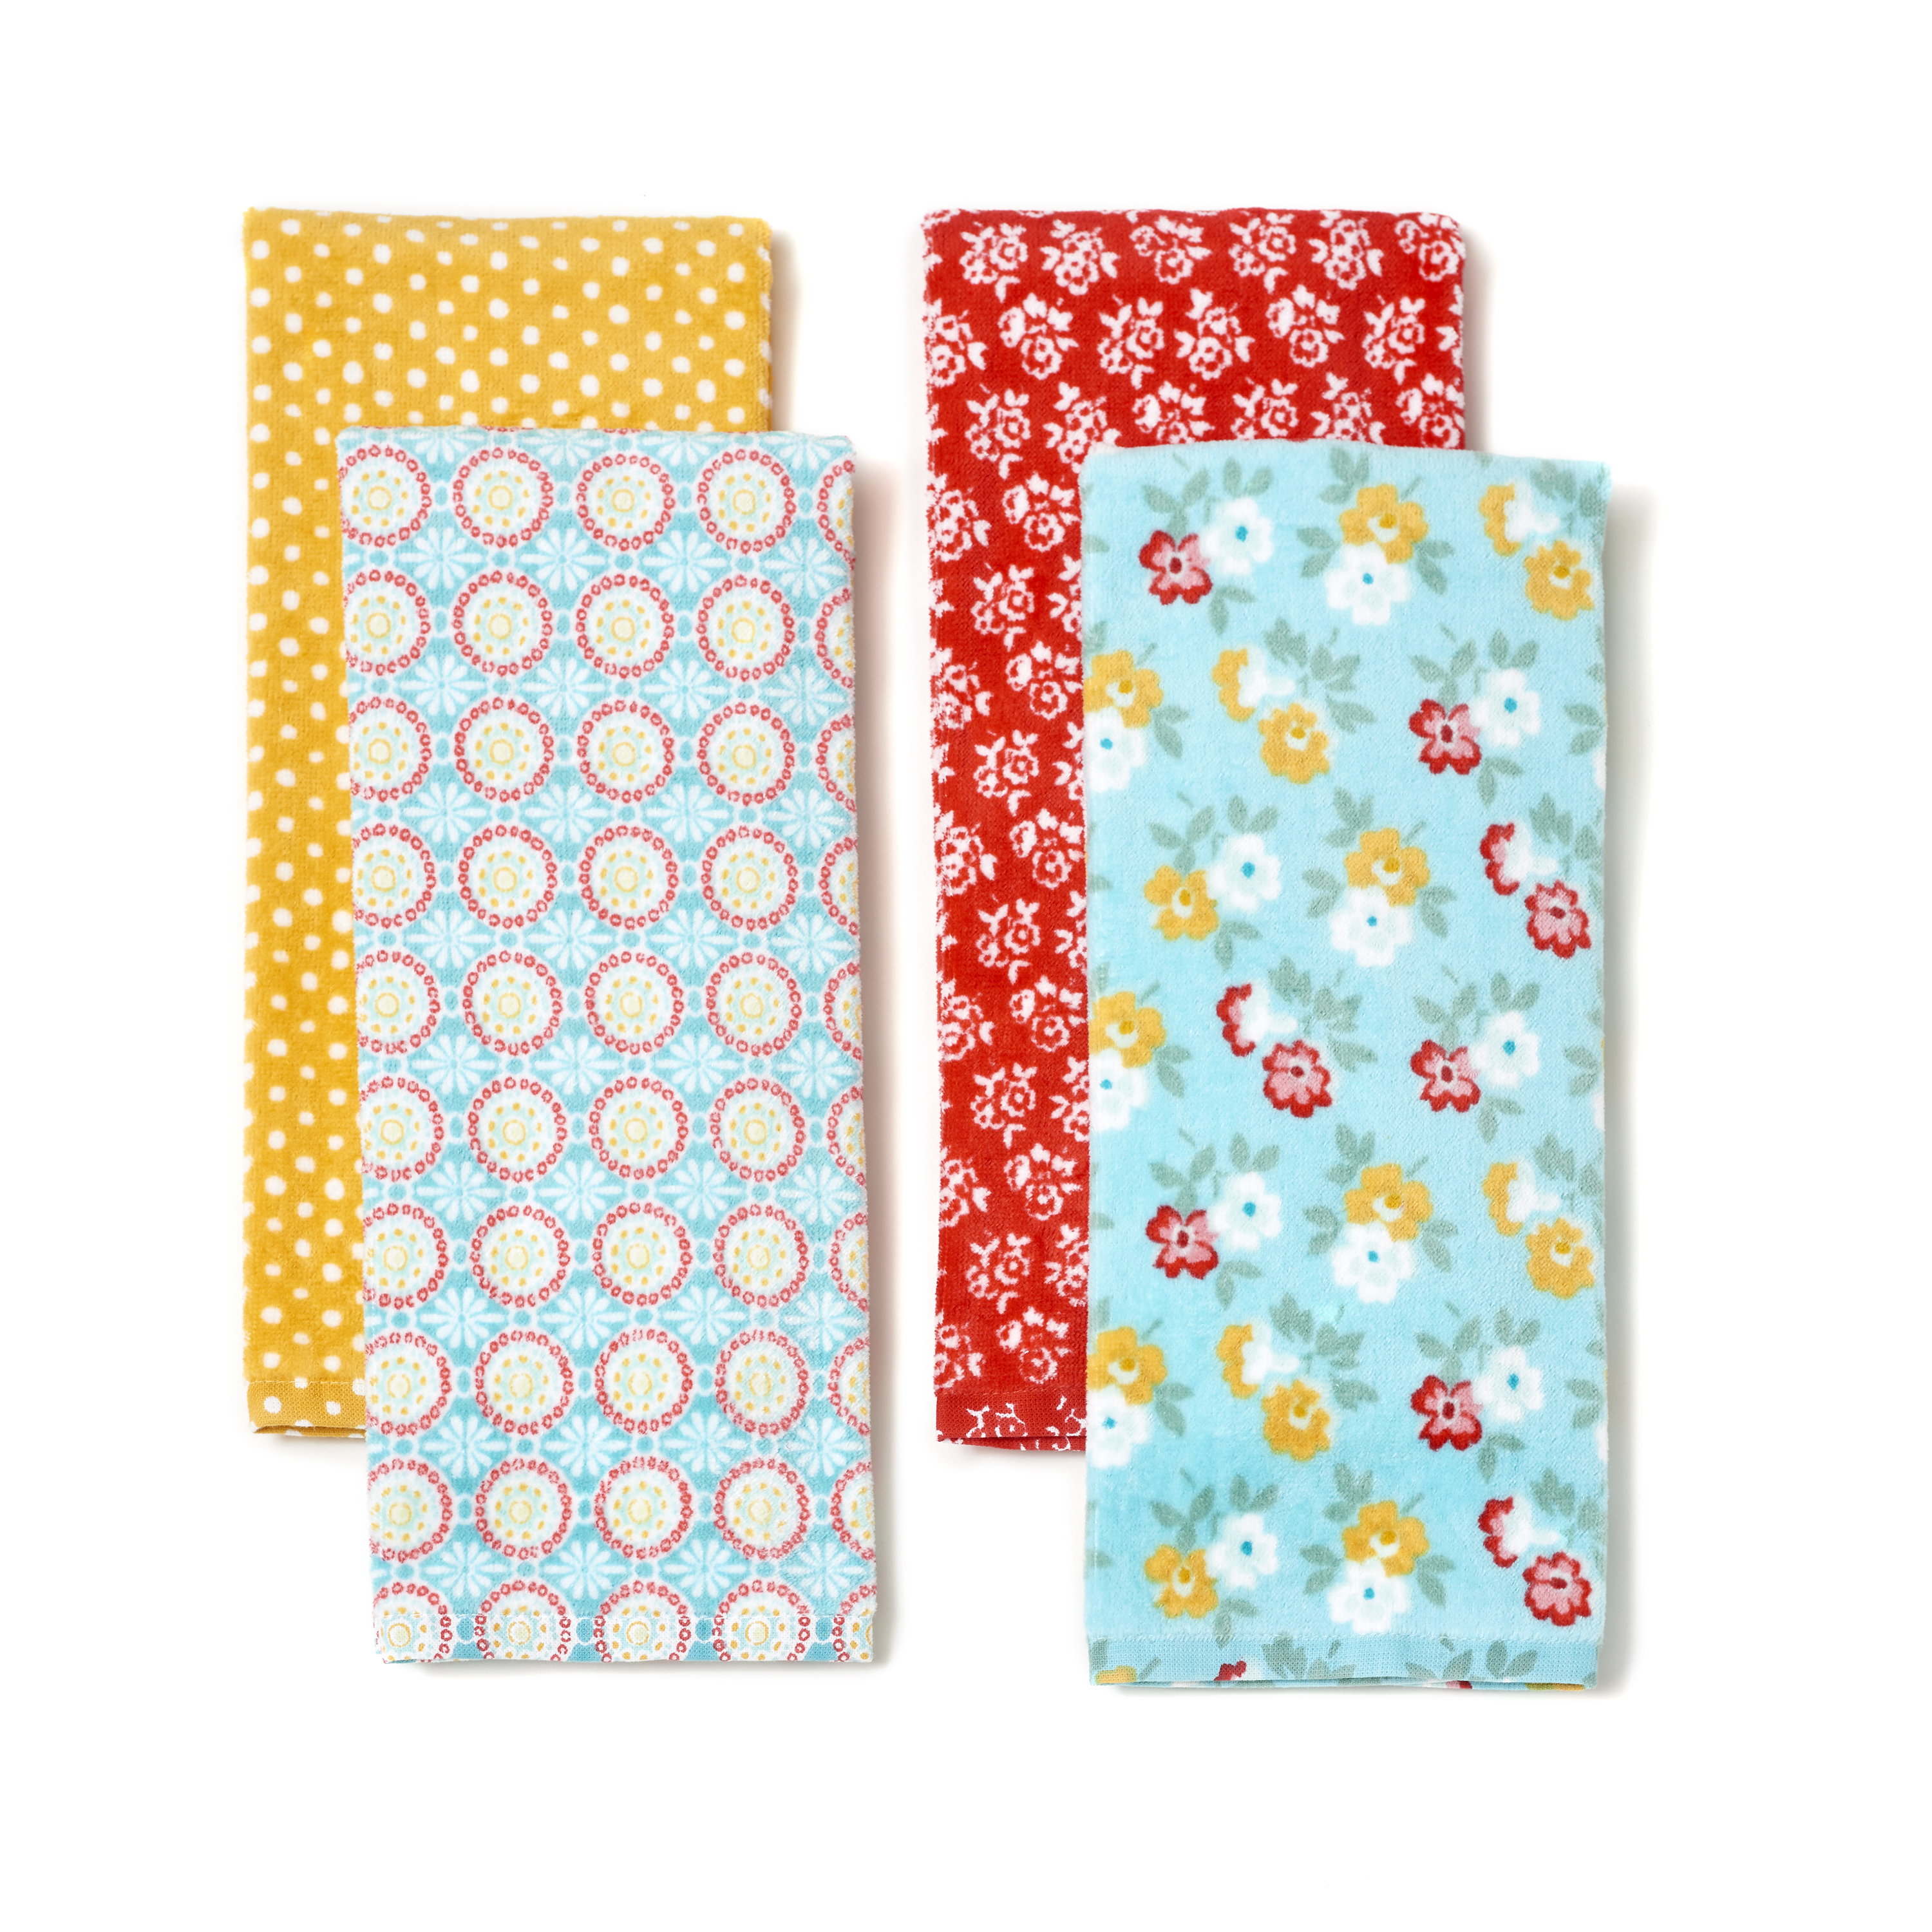 The Pioneer Woman Spring Floral 4 Pack Kitchen Towels